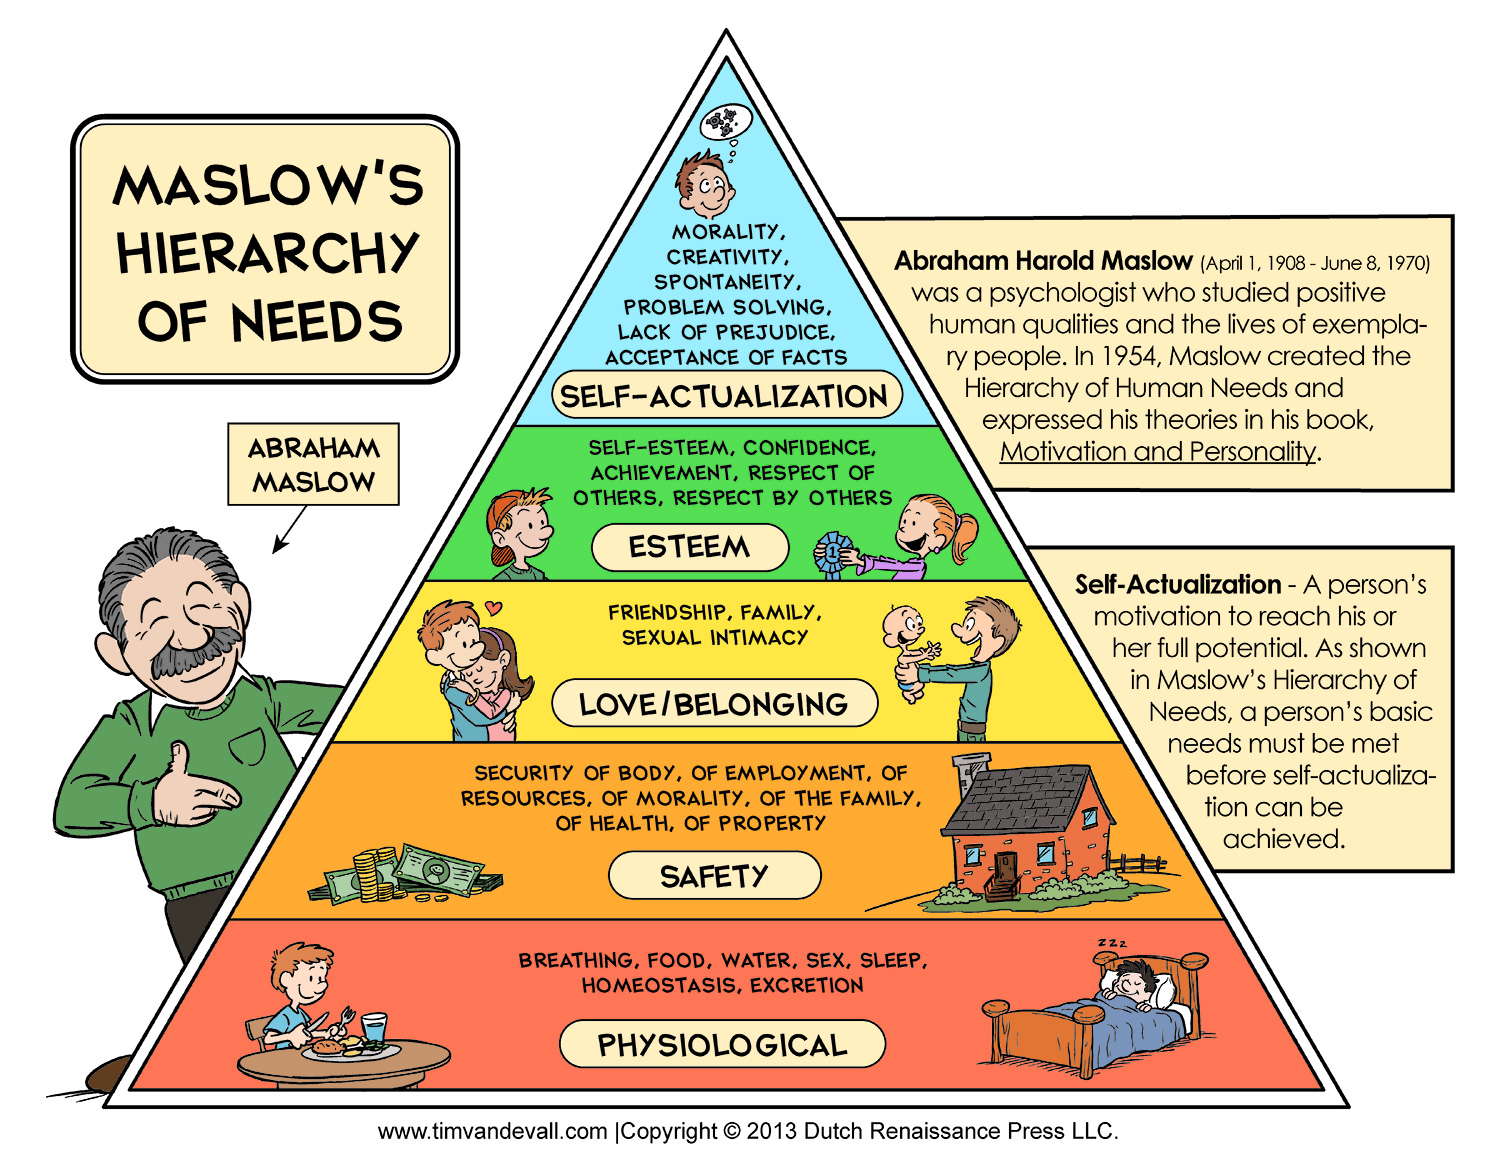 analysis of maslows theory of motivation What is maslow's hierarchy of needs theory the psychologist abraham maslow developed a theory that suggests we, humans, are motivated to satisfy five basic needs.